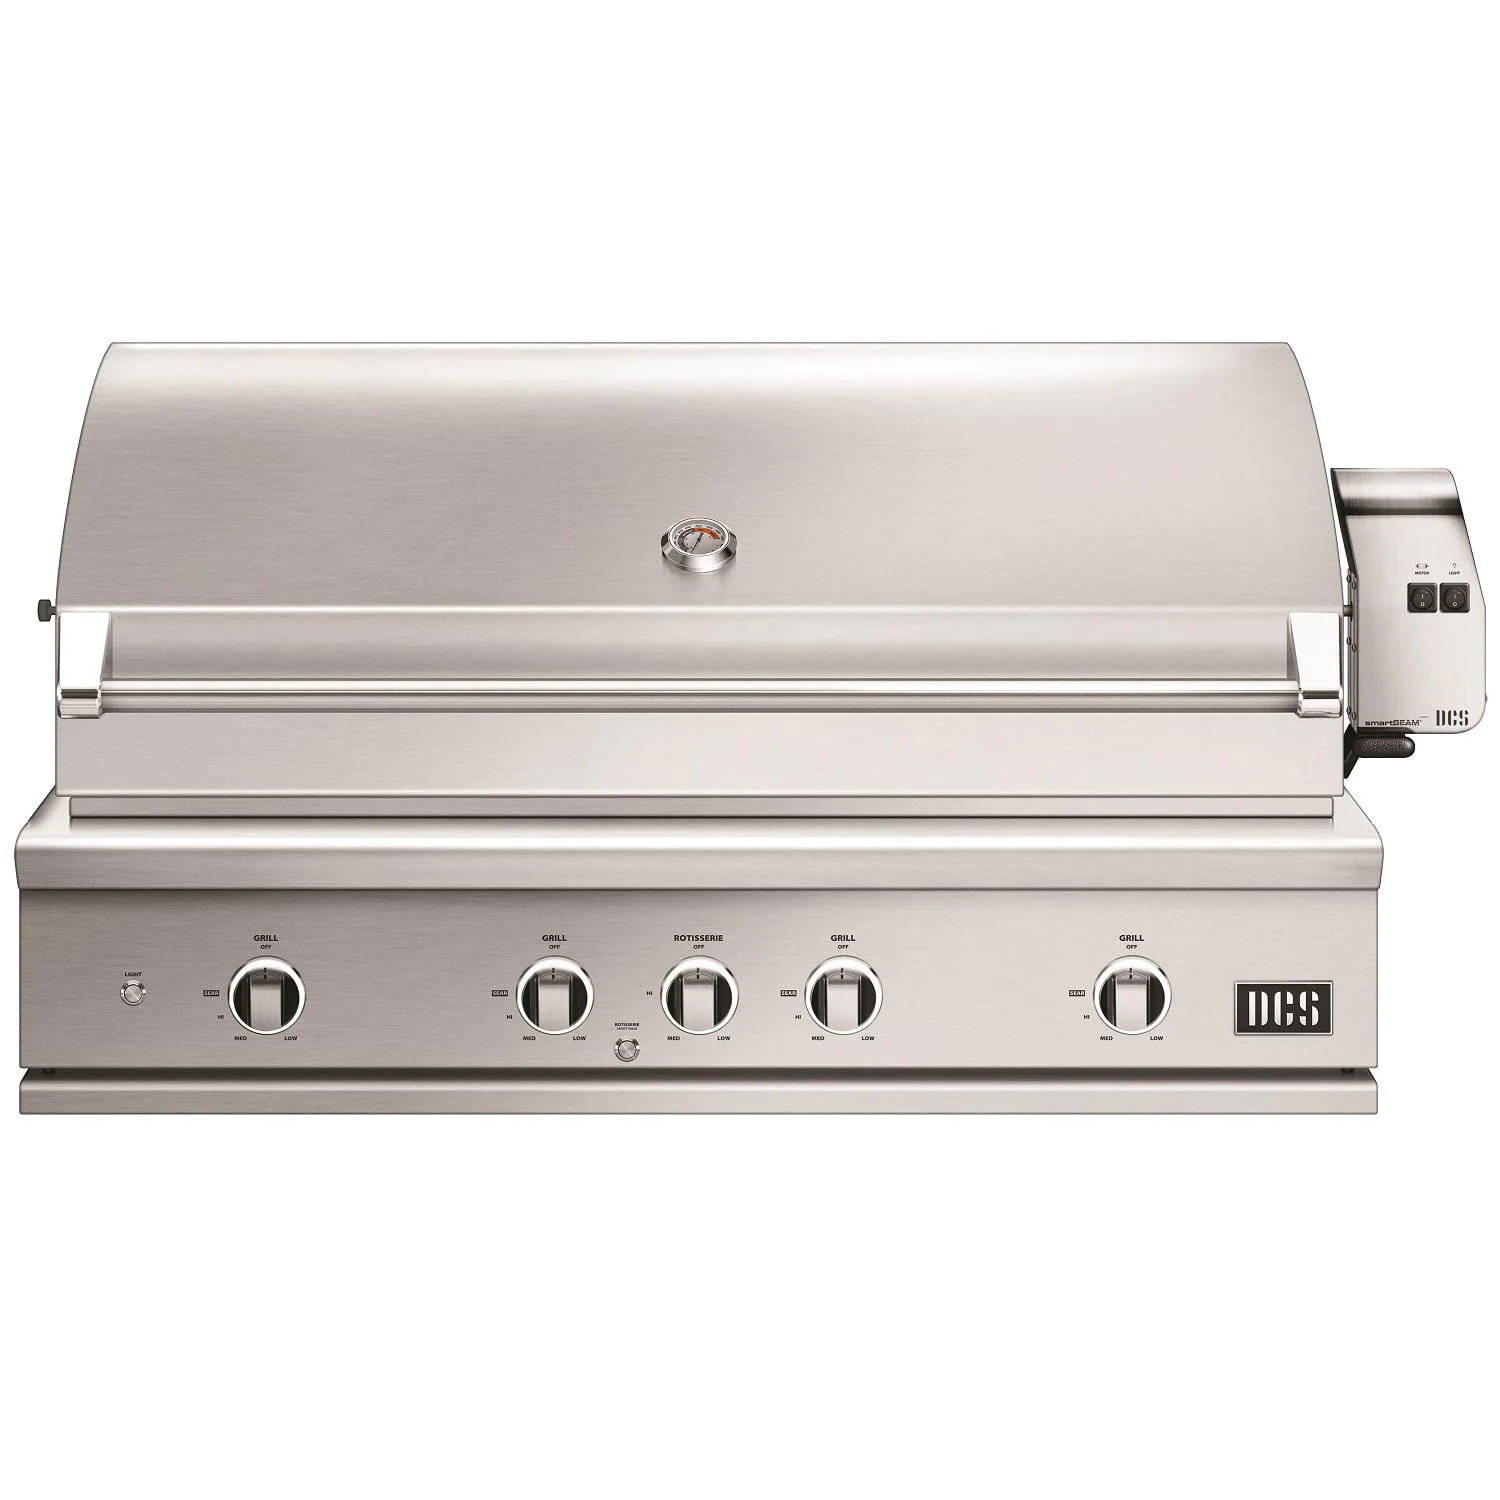 """DCS Series 9 Evolution 48"""" Natural Gas Grill W/ Rotisserie, Cart, & Grill Cover - be1-48rc-n"""